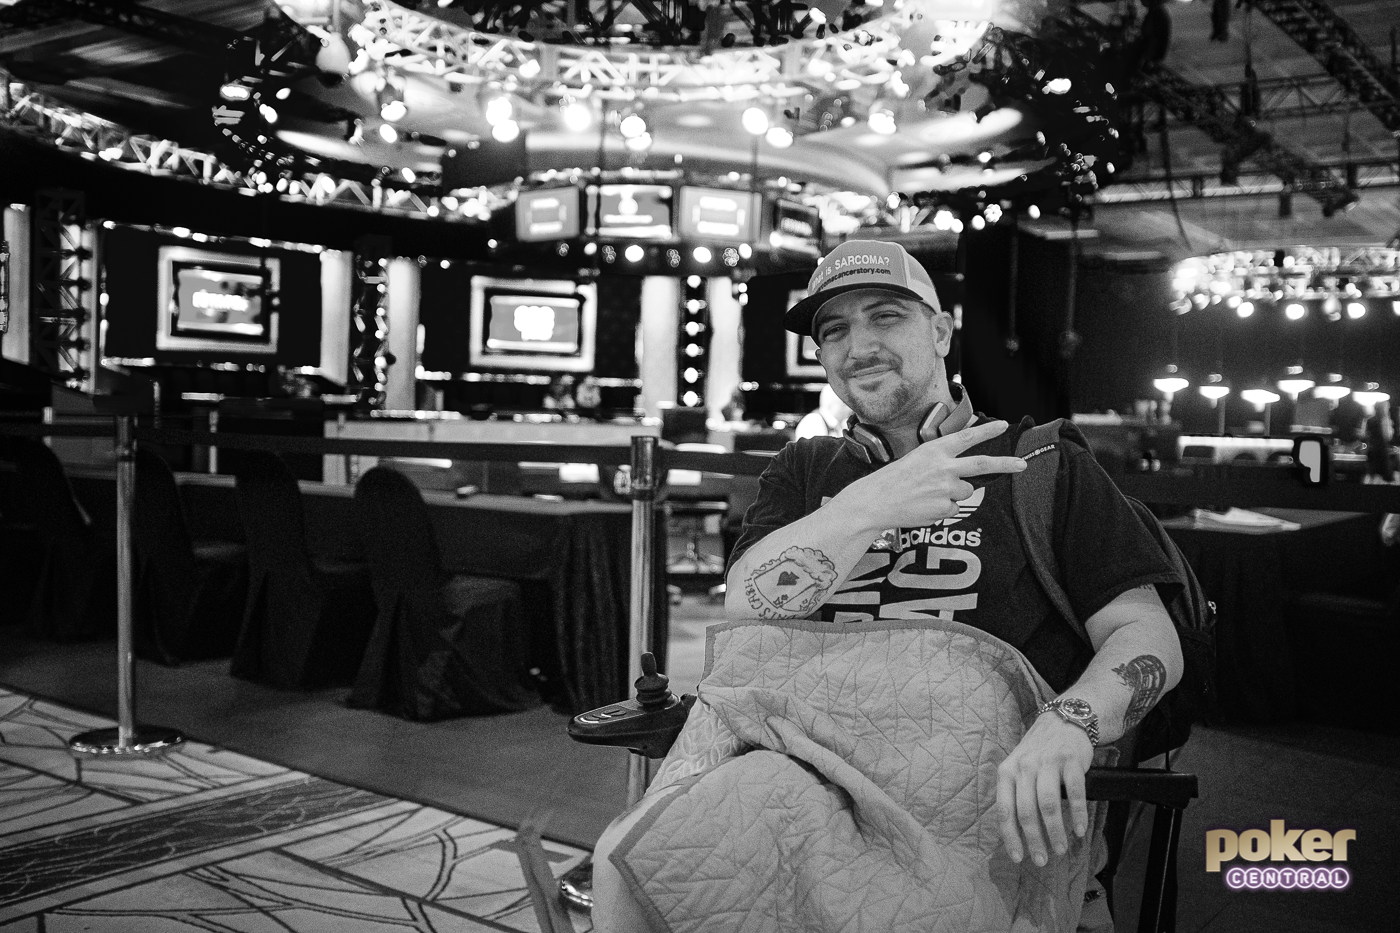 Kevin Roster's poker journey was about more than getting results, it was about raising awareness for sarcoma, a disease that's slowly taking control of his body.